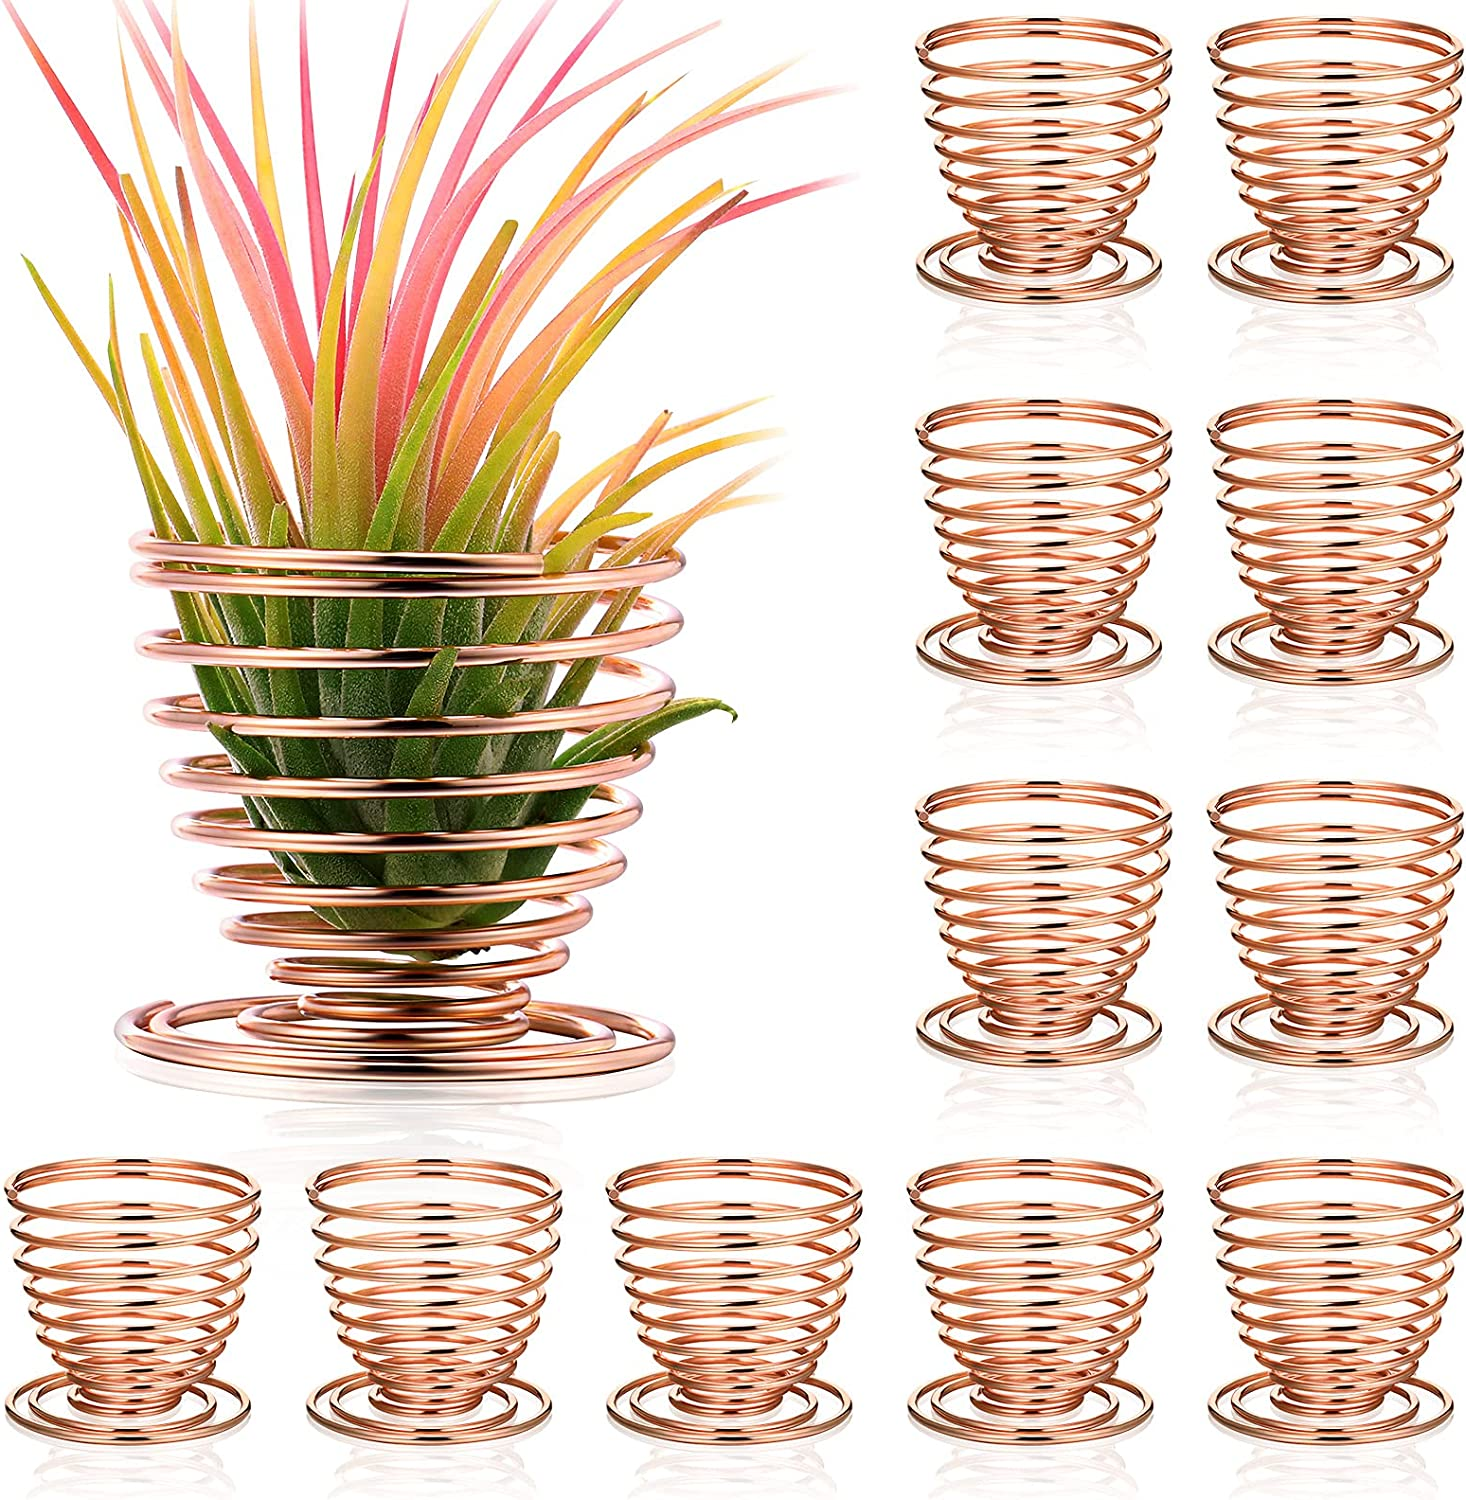 Nuogo Air Plants Holder Airplant Stand Container Tillandsia Stainless Steel Display Racks, Live Tropical Plant Home Office Desktop Decoration (Rose Gold,12 Pieces)